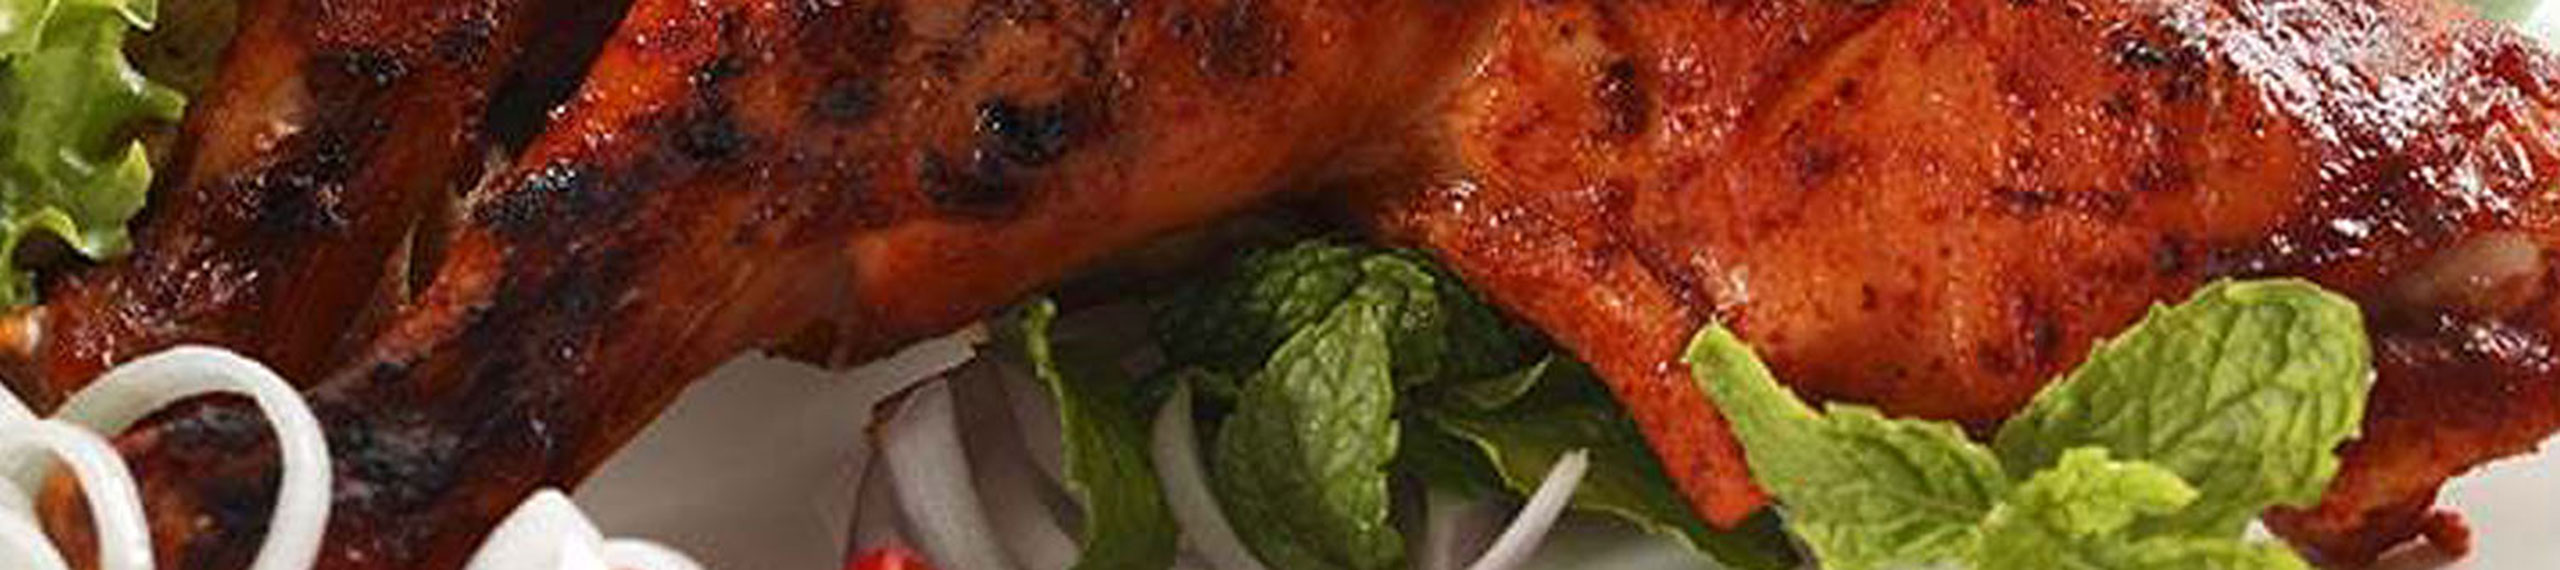 Restaurant Indien Paris - Chicken Tandoori